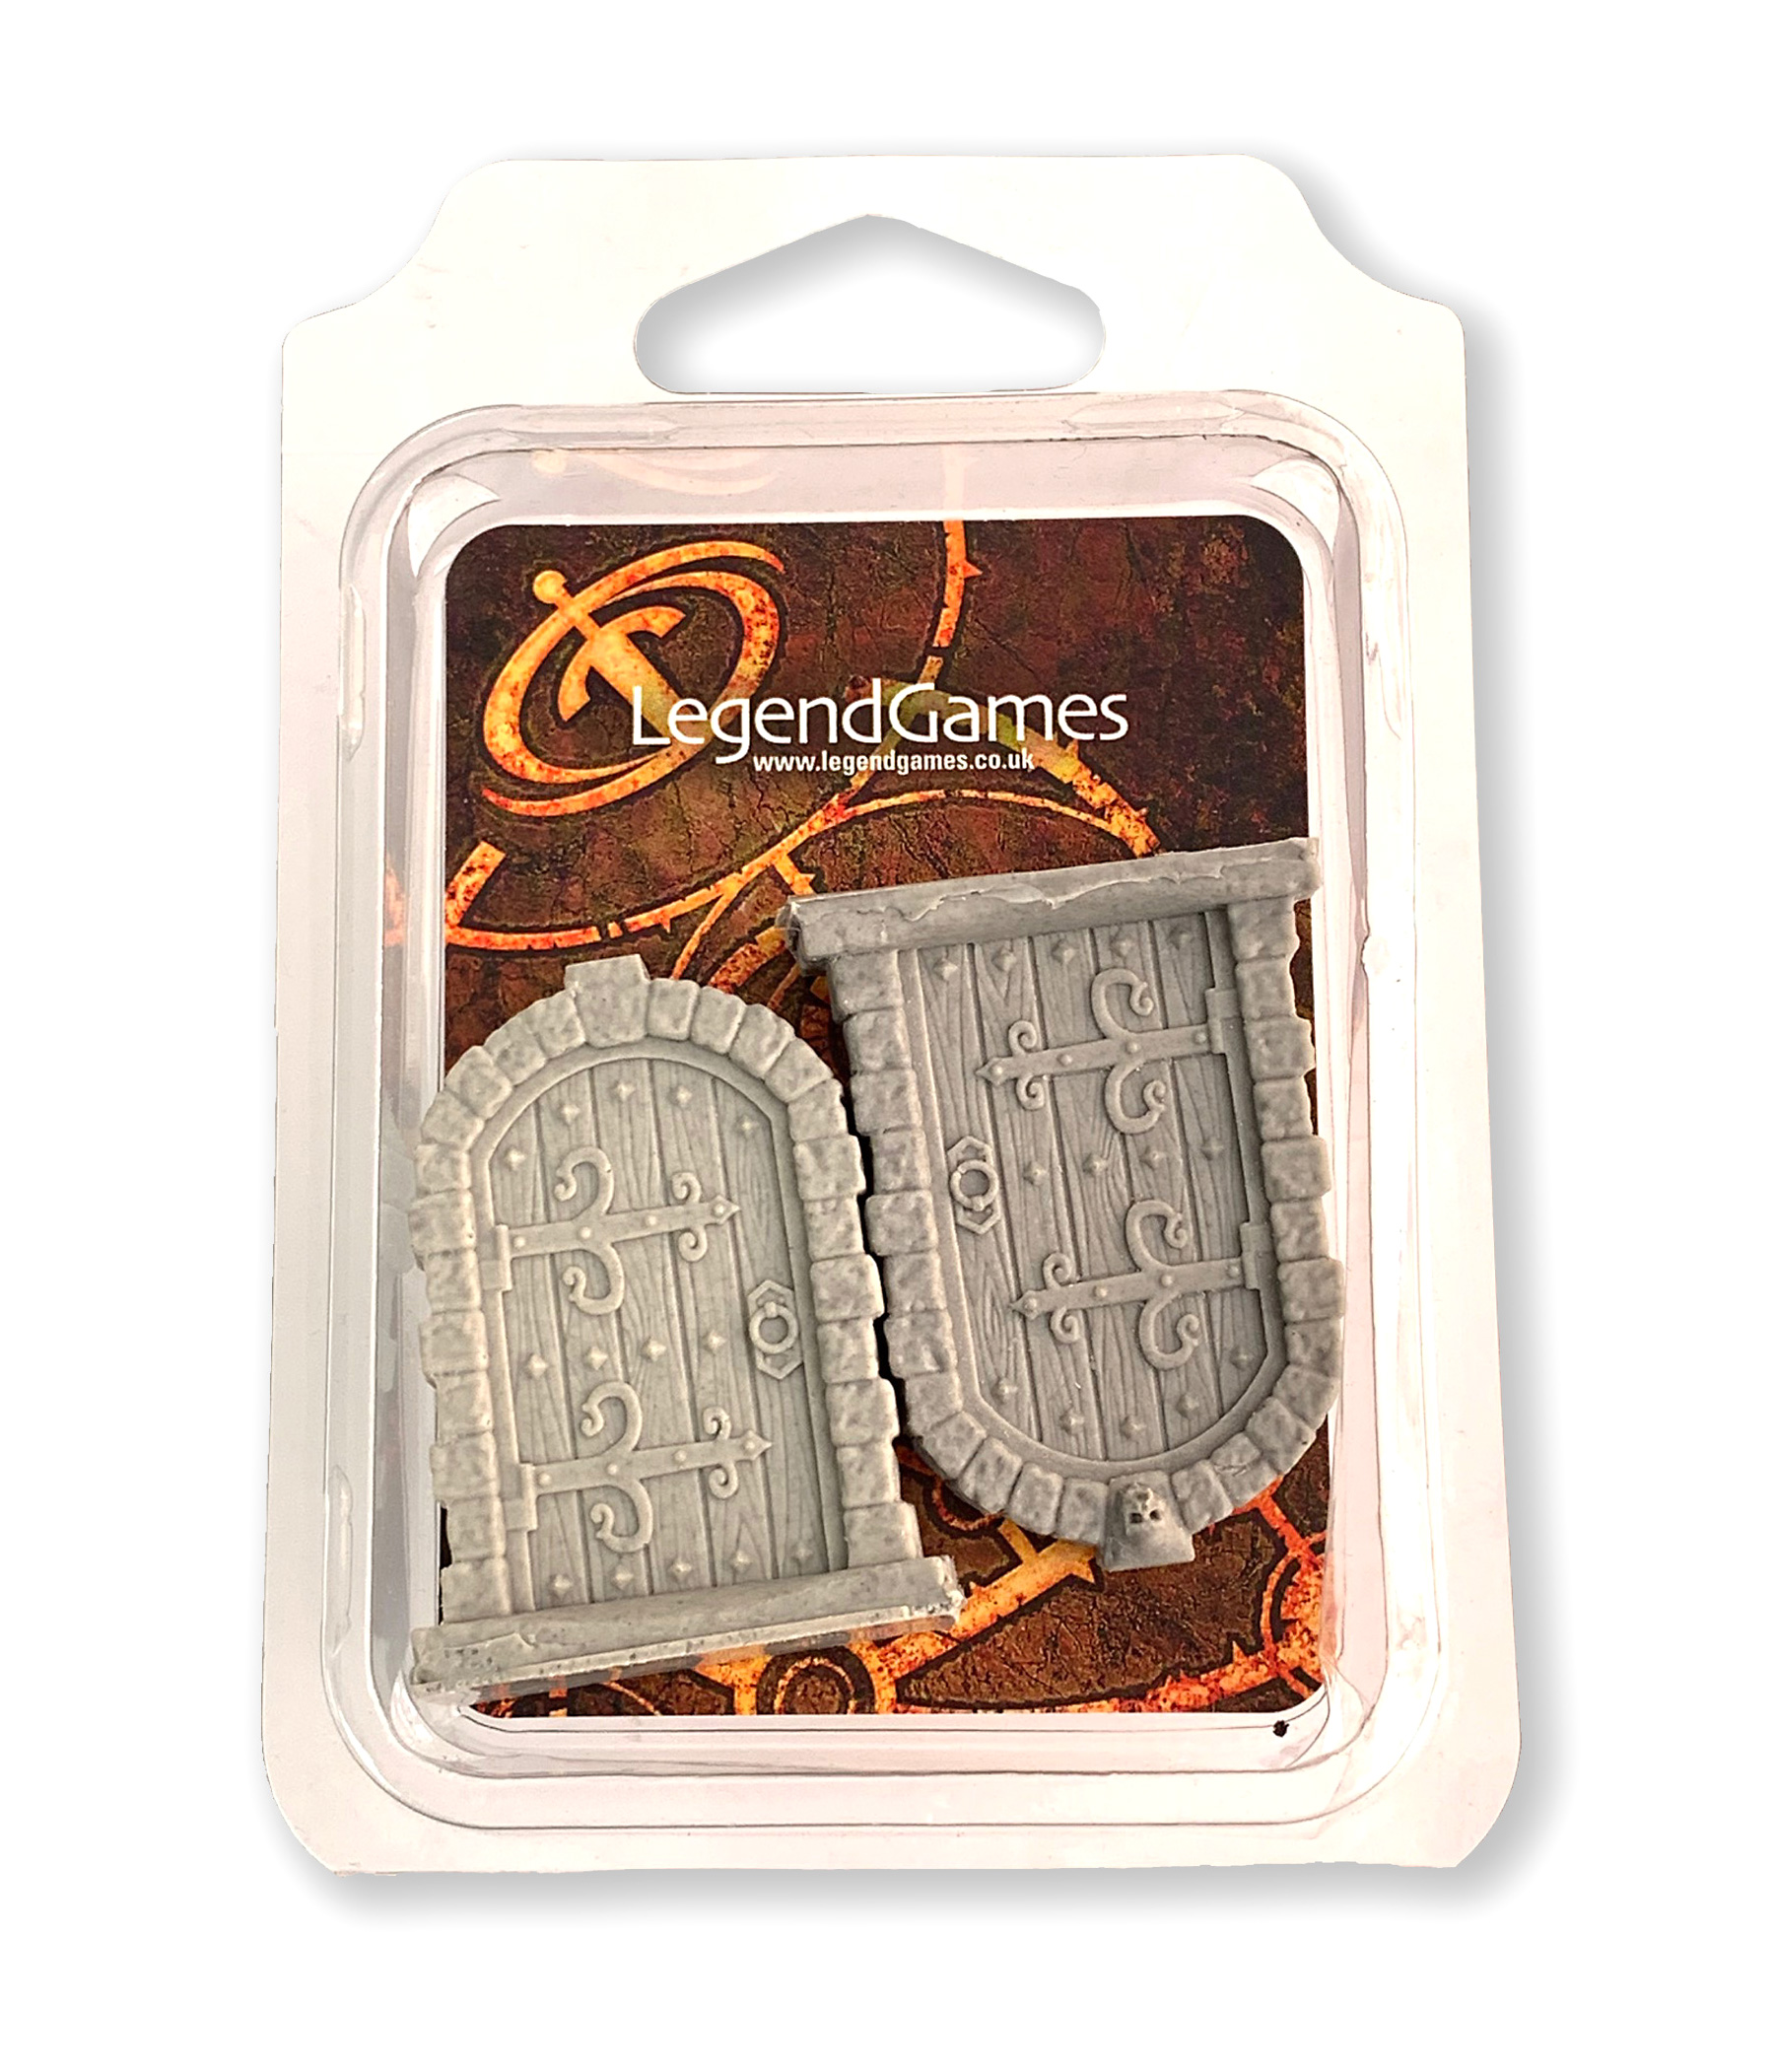 LegendGames Resin Dungeon Doors - Series One set of 2 doors